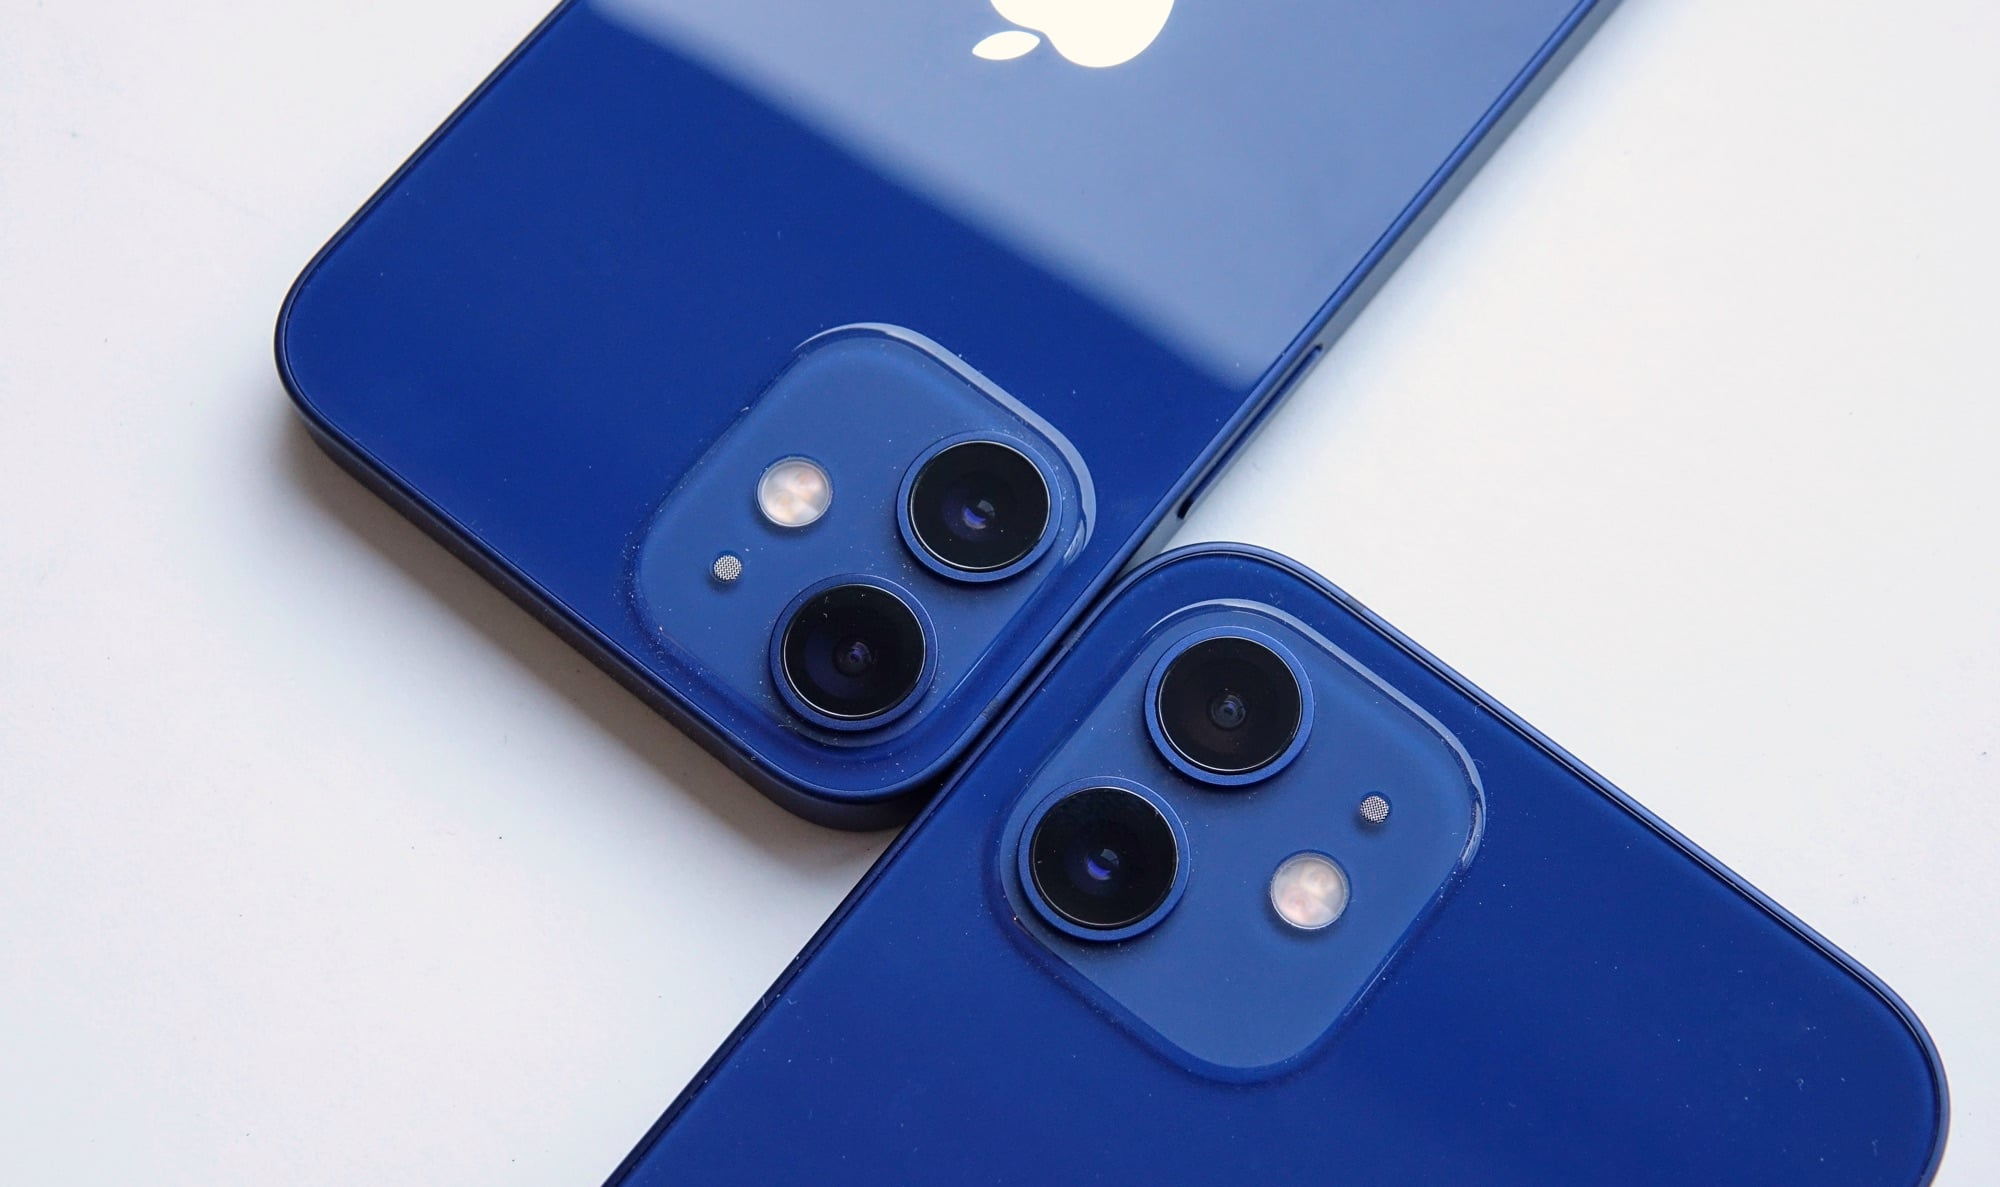 iPhone 12 Mini camera (left) next to the iPhone 12 camera (right)